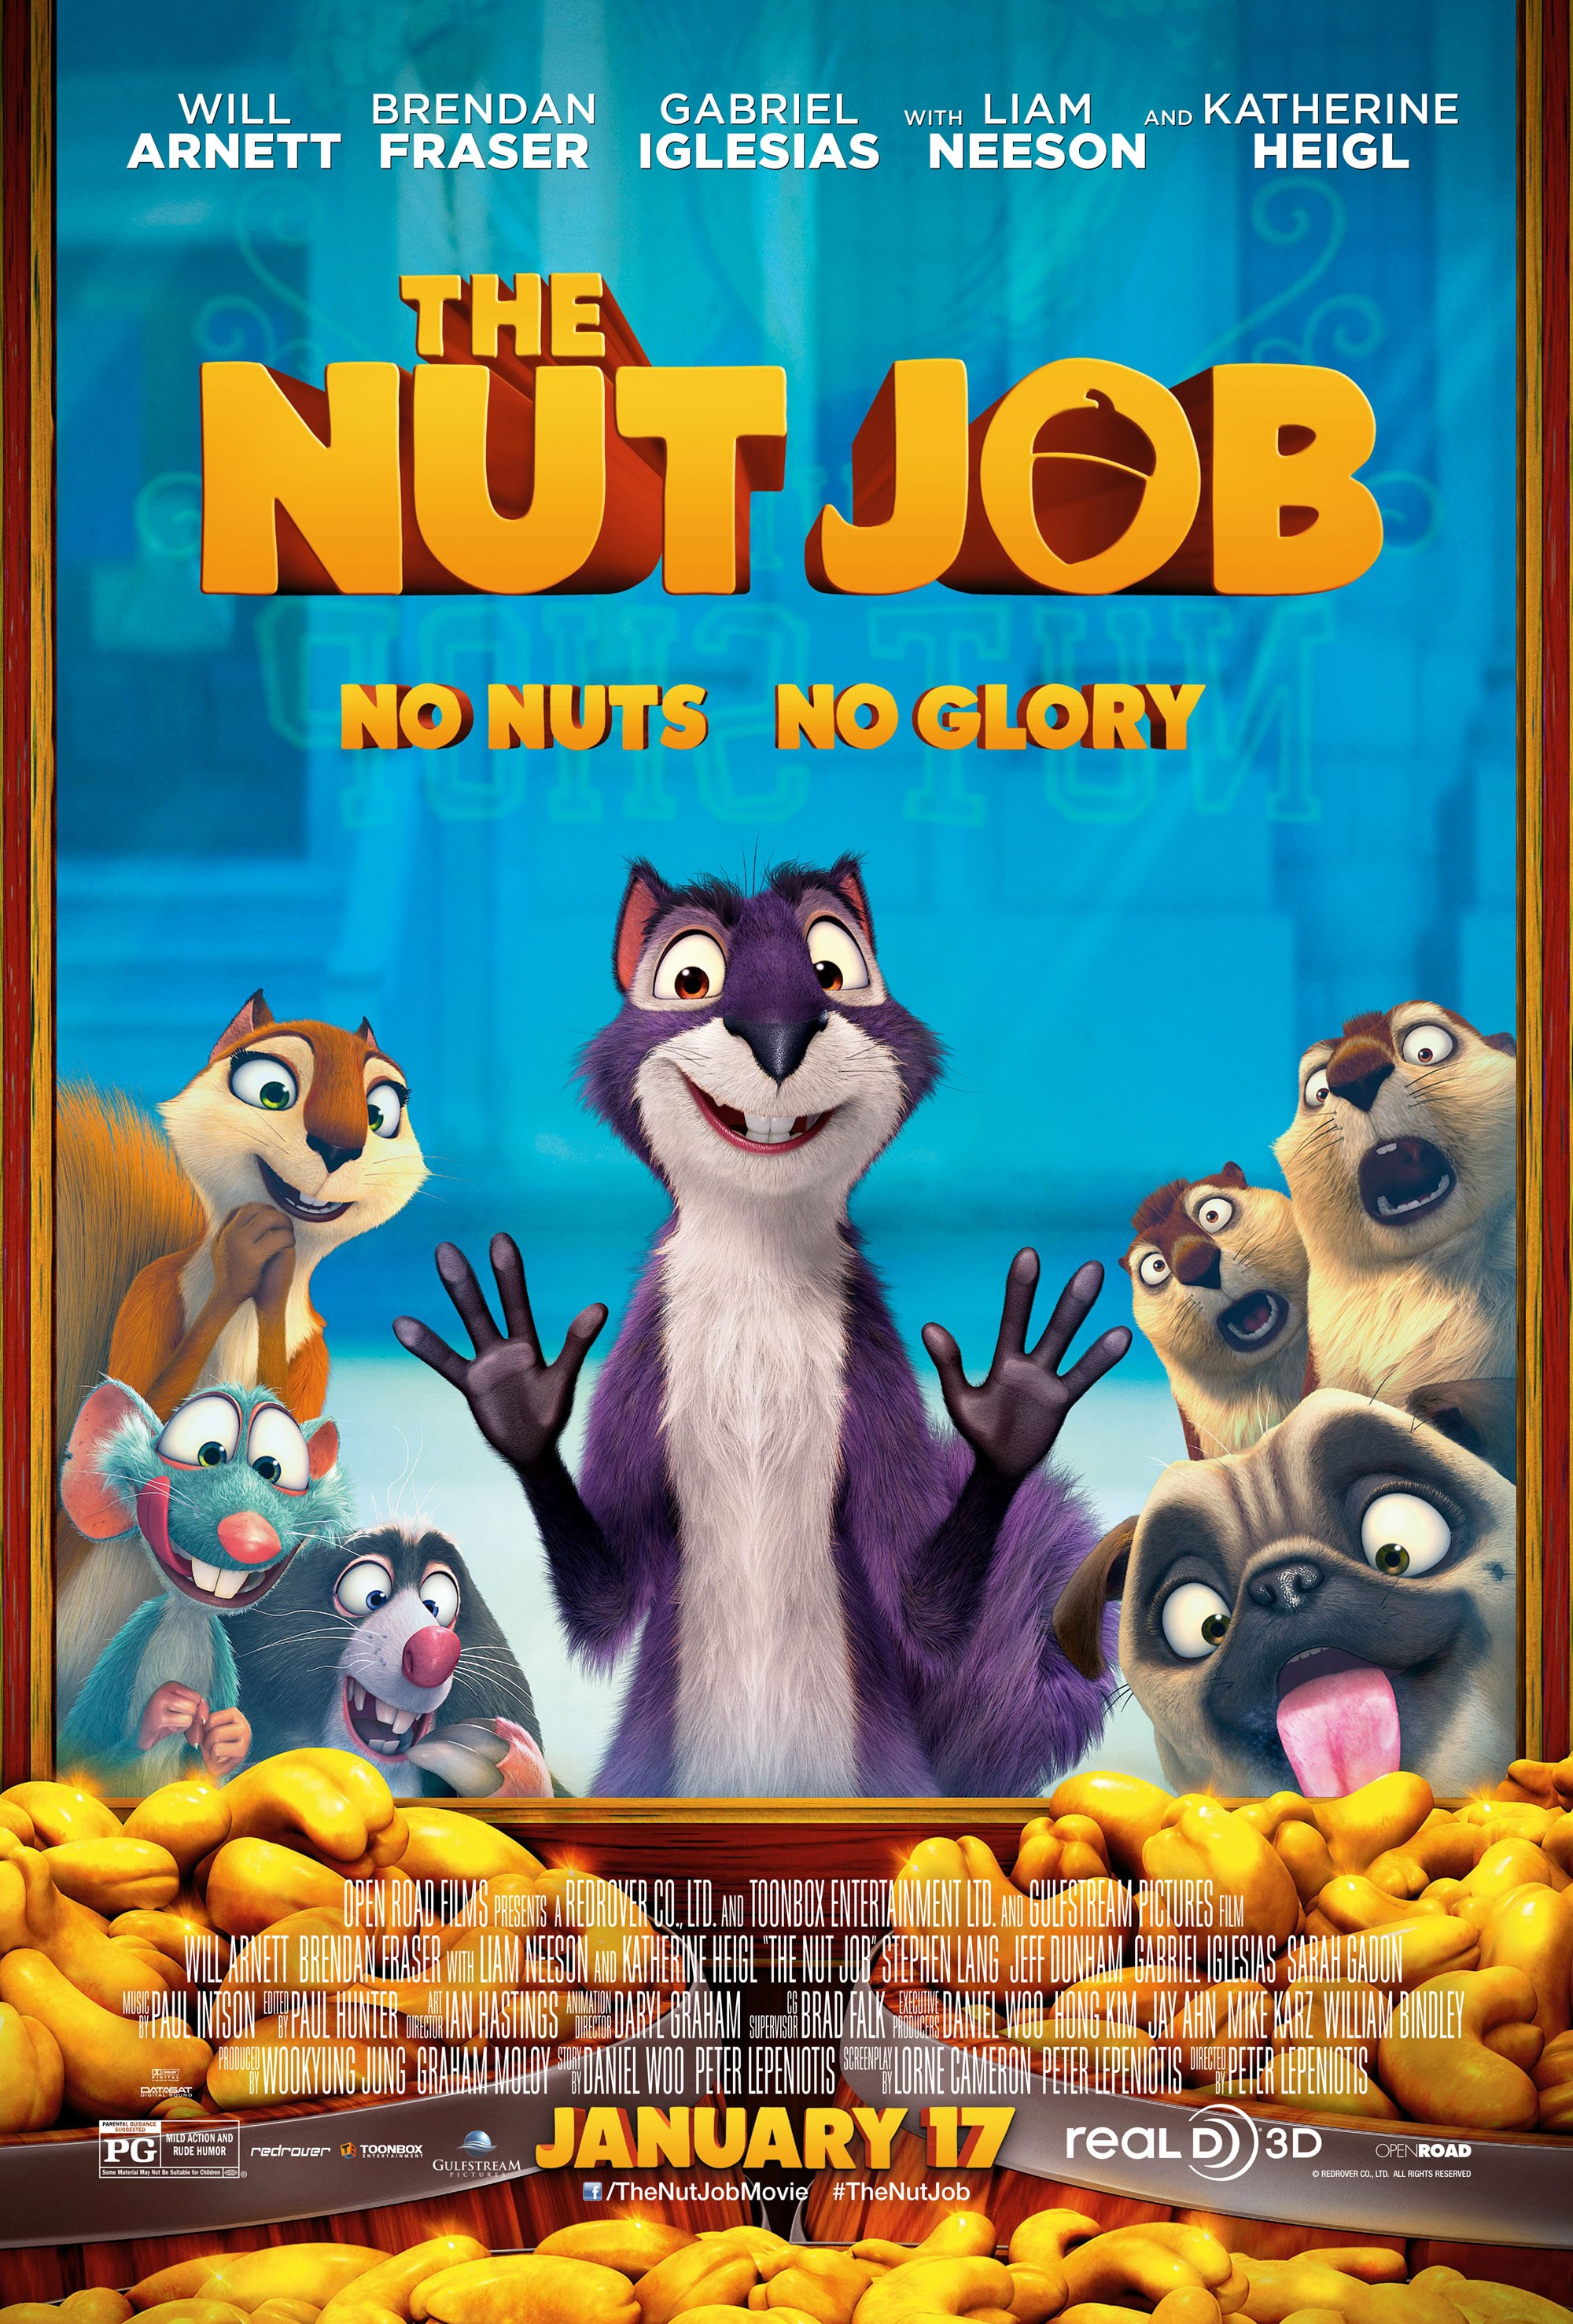 The Nut Job-Official Poster Banner PROMO POSTER XXLG-19NOVEMBRO2013